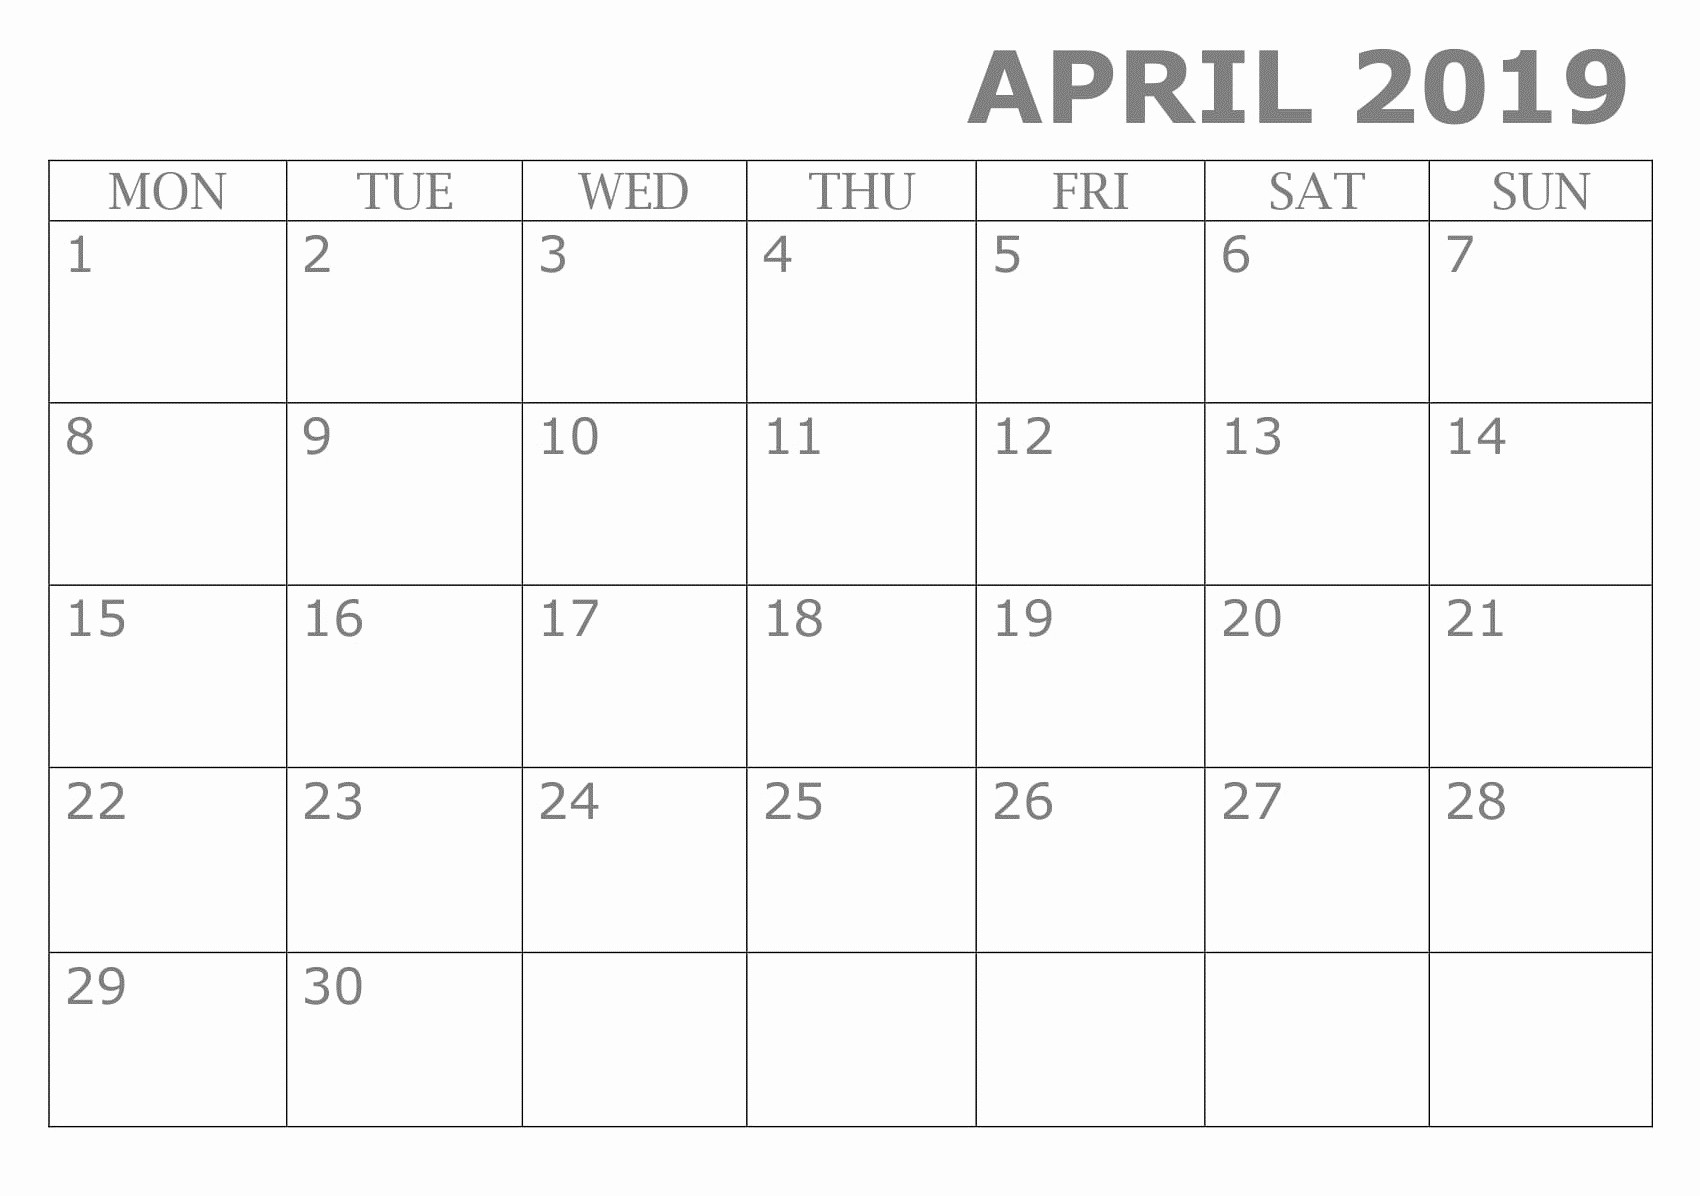 Google Sheets Calendar Template 2019 Inspirational April 2019 Calendar Template Monthly Excel Sheet